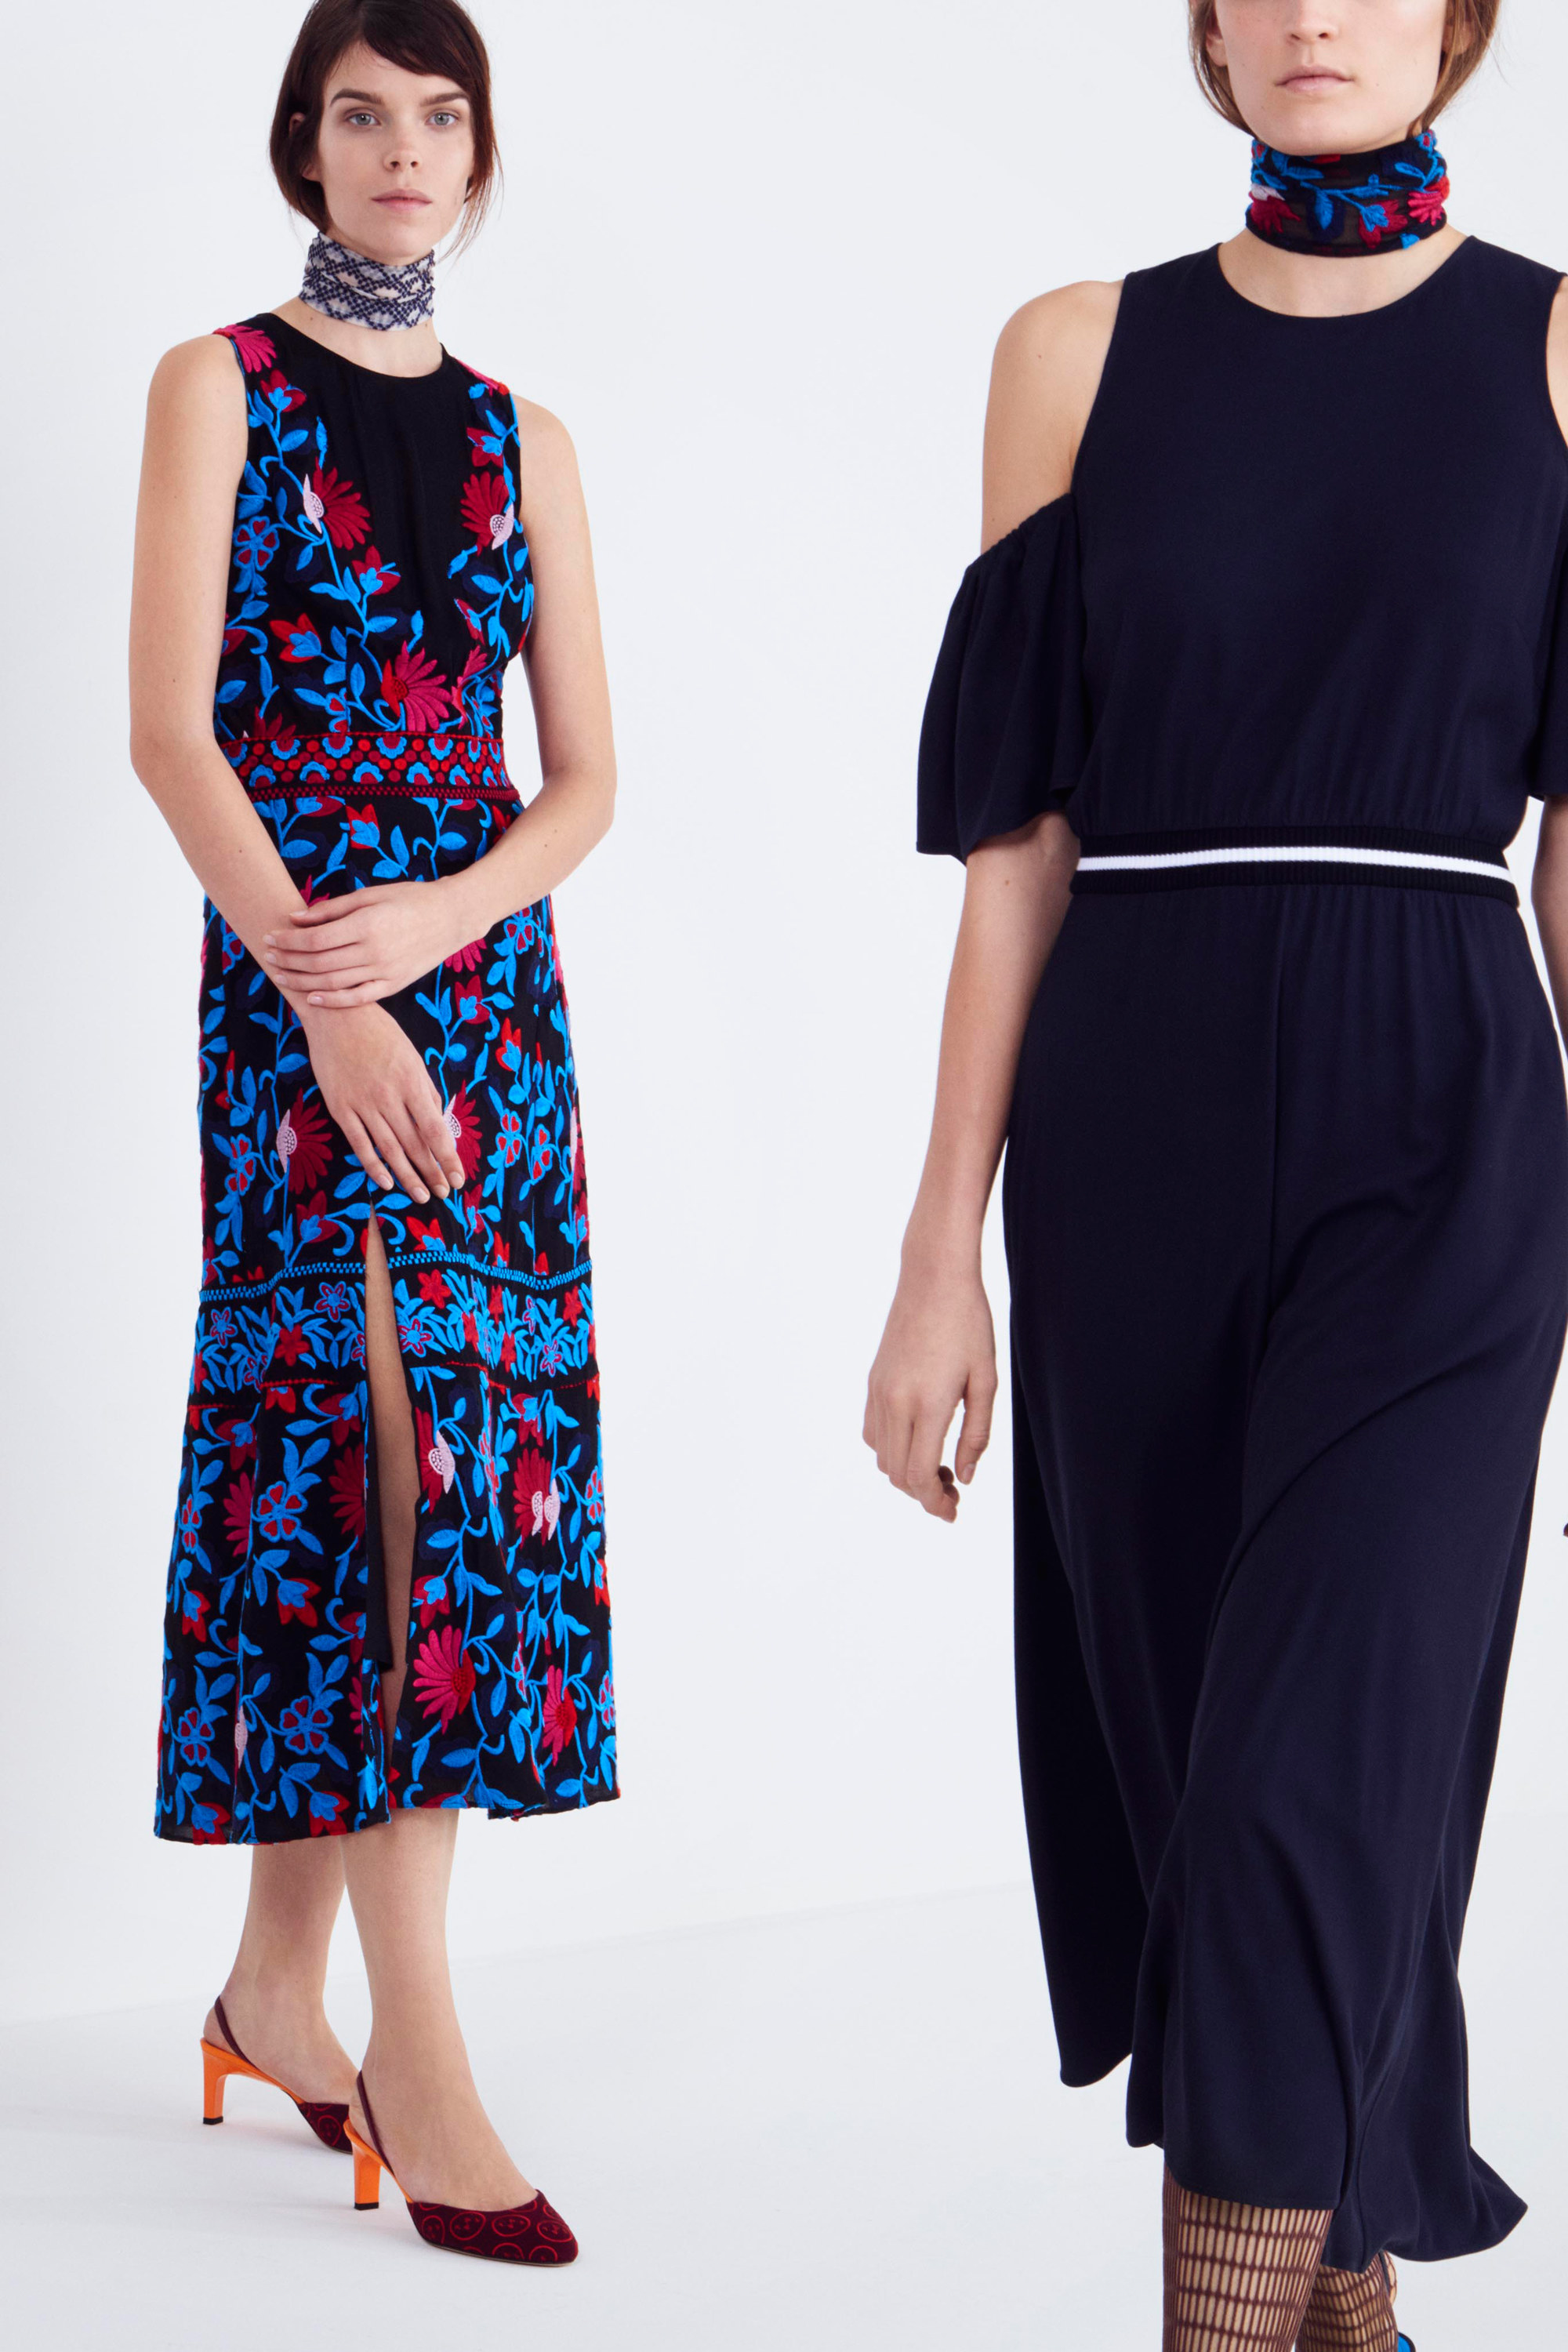 tanya-taylor-pre-fall-2016-lookbook-19.jpg